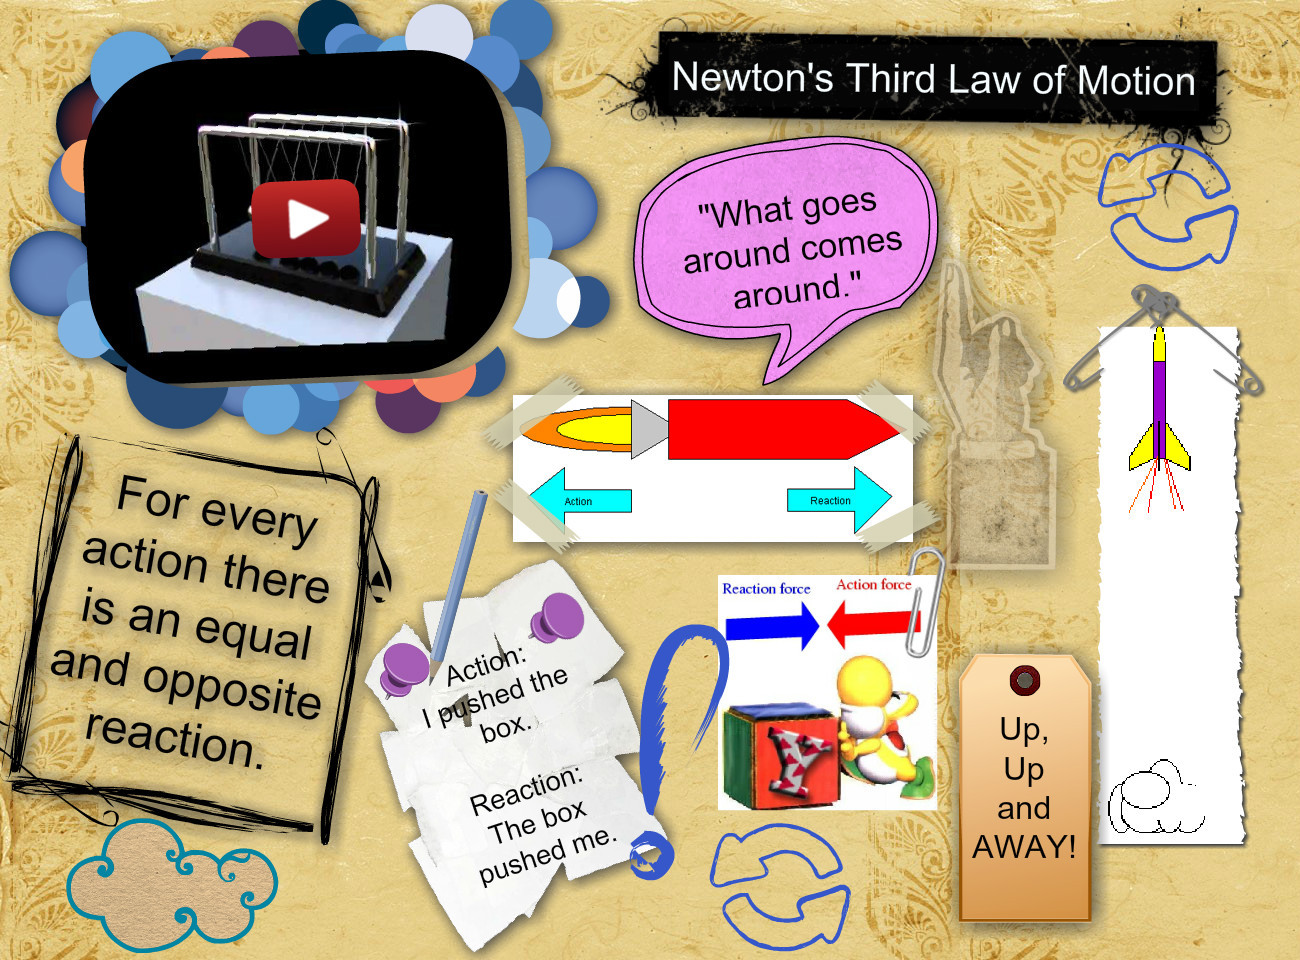 newton s third law of motion Mechanics 211 newton's third law of motion mc-web-mech2-11-2009 newton's third law of motion states that: if a body a exerts a force on a body b, then b exerts.